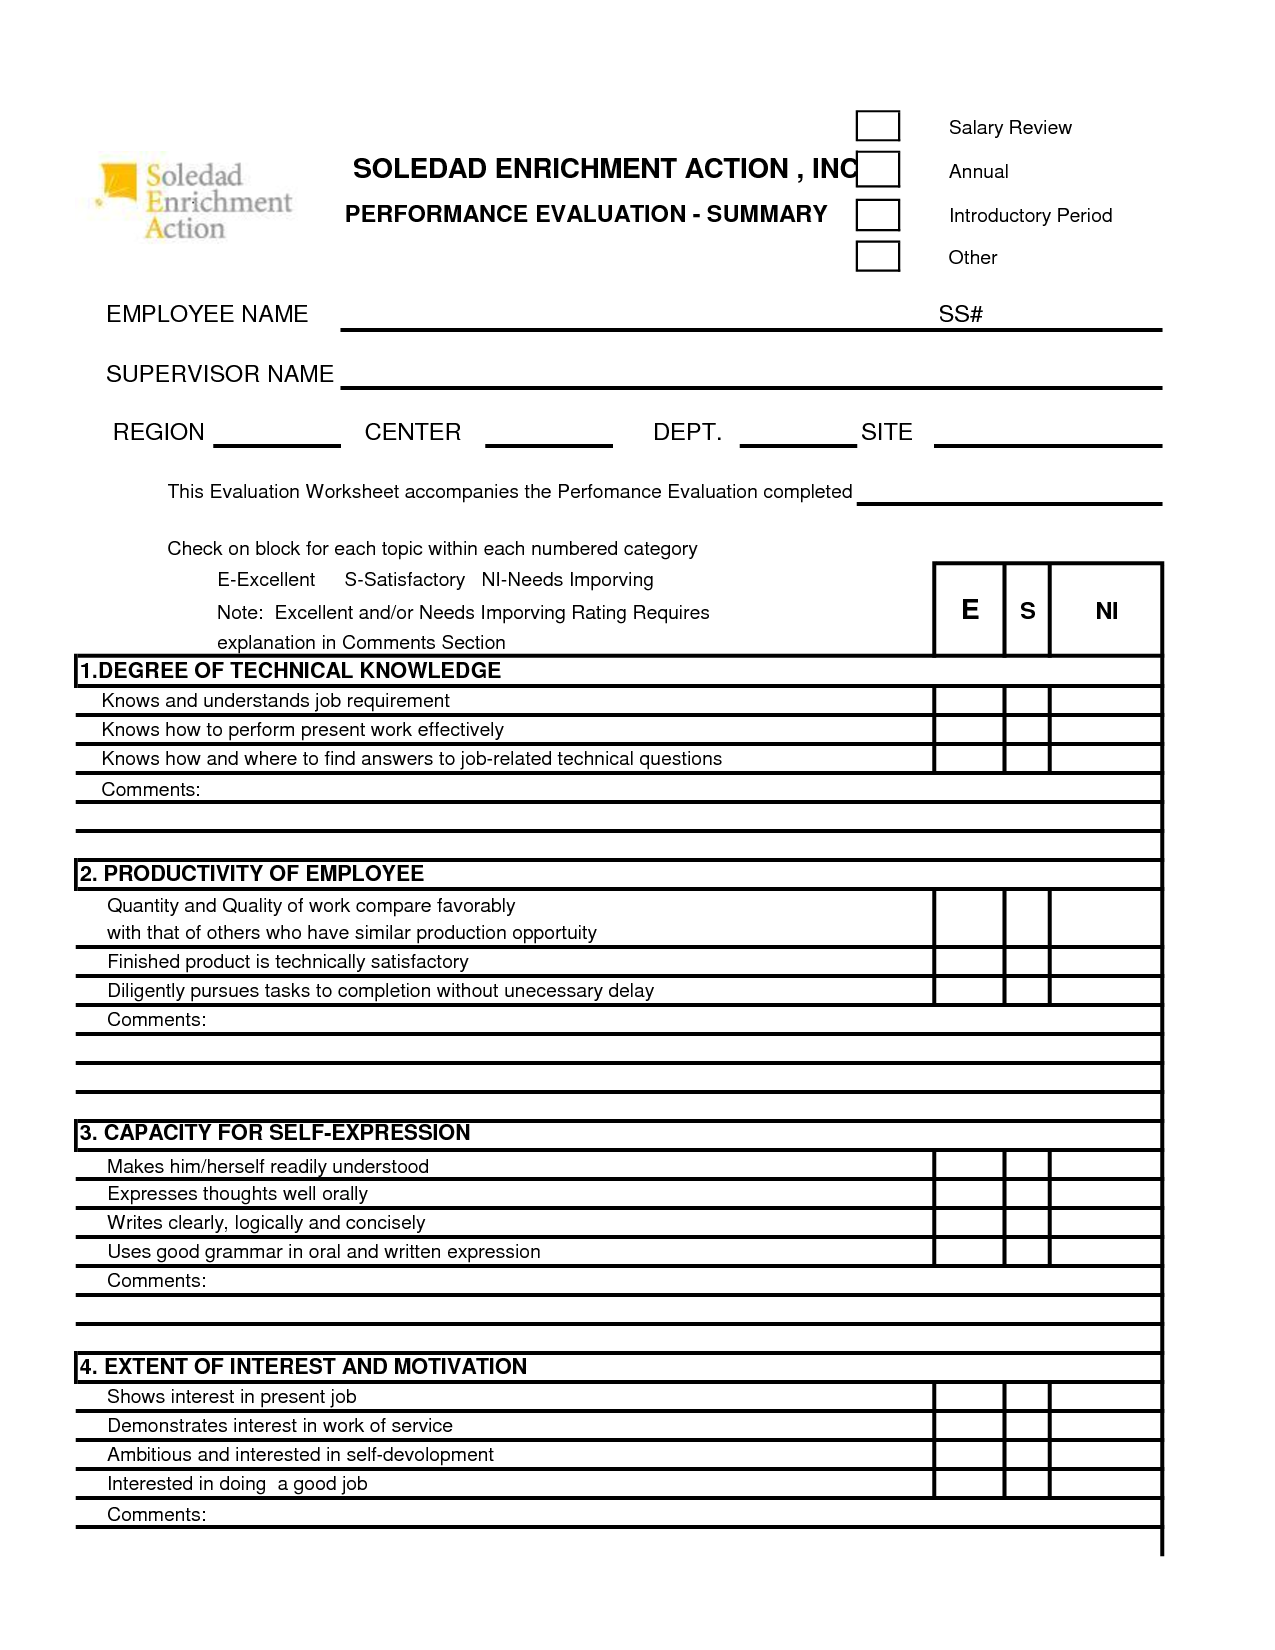 Free 360 Performance Appraisal Form